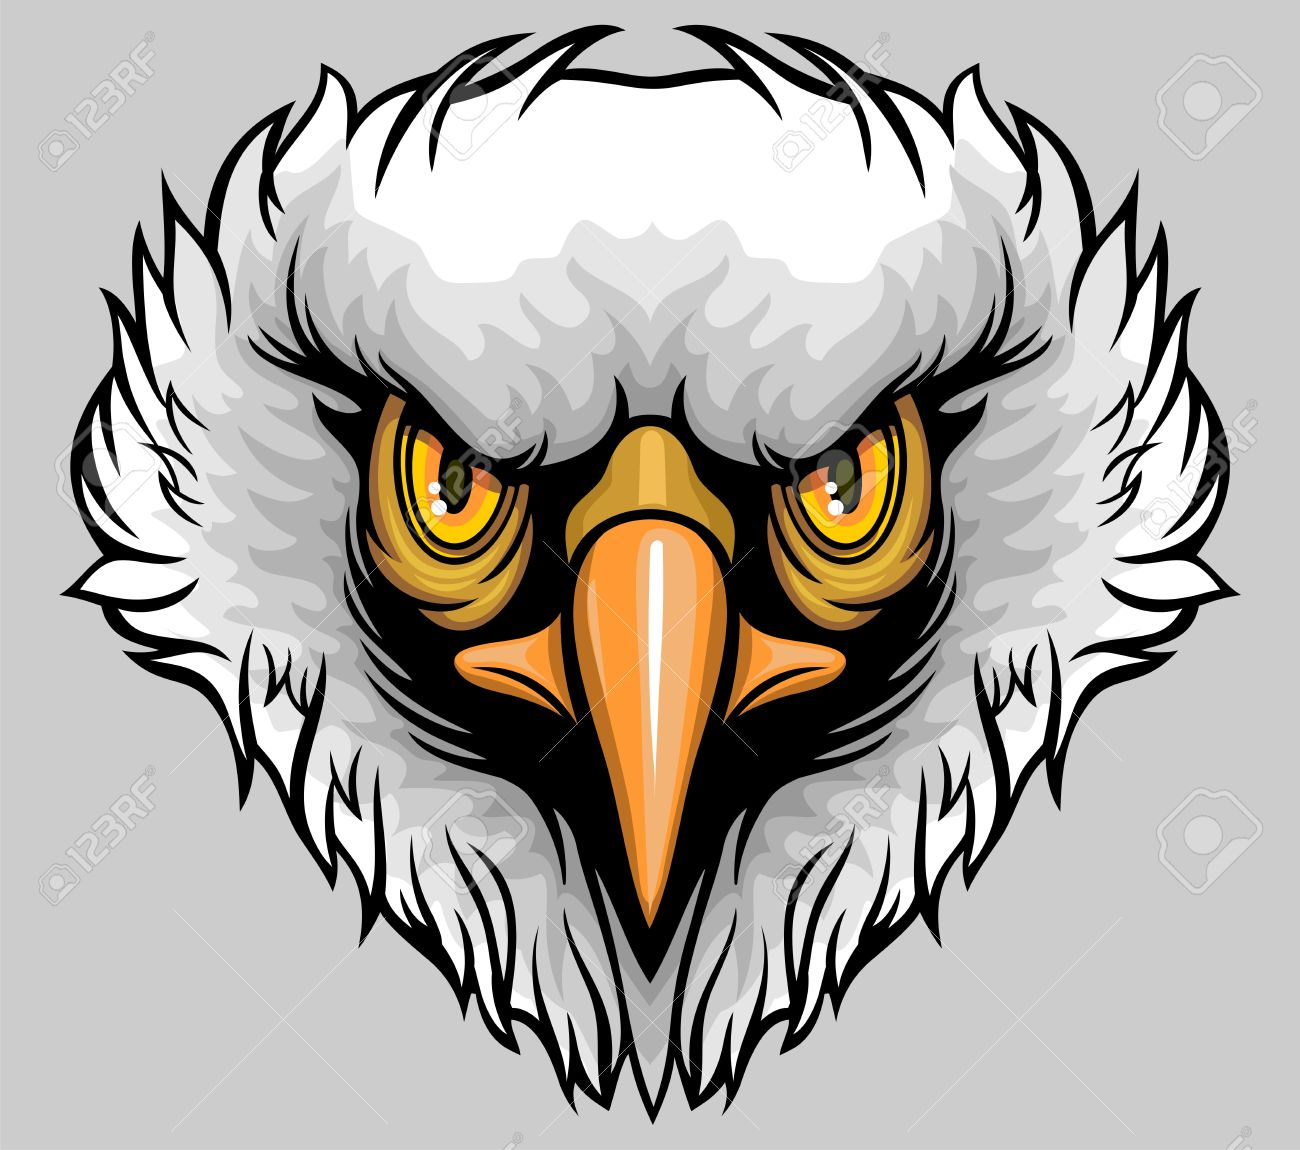 White Headed Eagle With Yellow Sharp Eyes Royalty Free Cliparts.